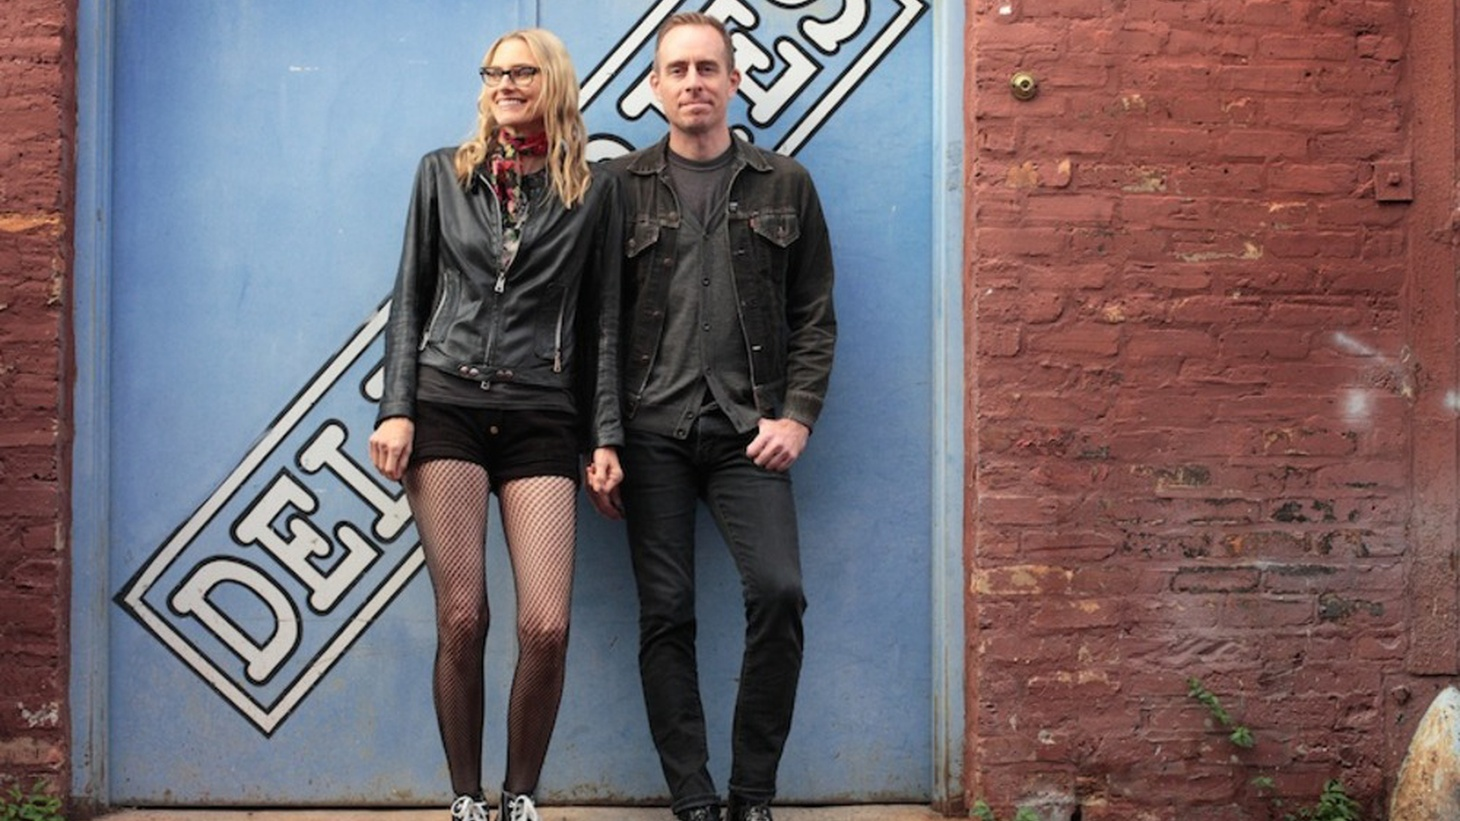 Singers Aimee Mann and Ted Leo work together as The Both, and this holiday season they get their yuletide cheer on with a sweet song commemorating the occasion.